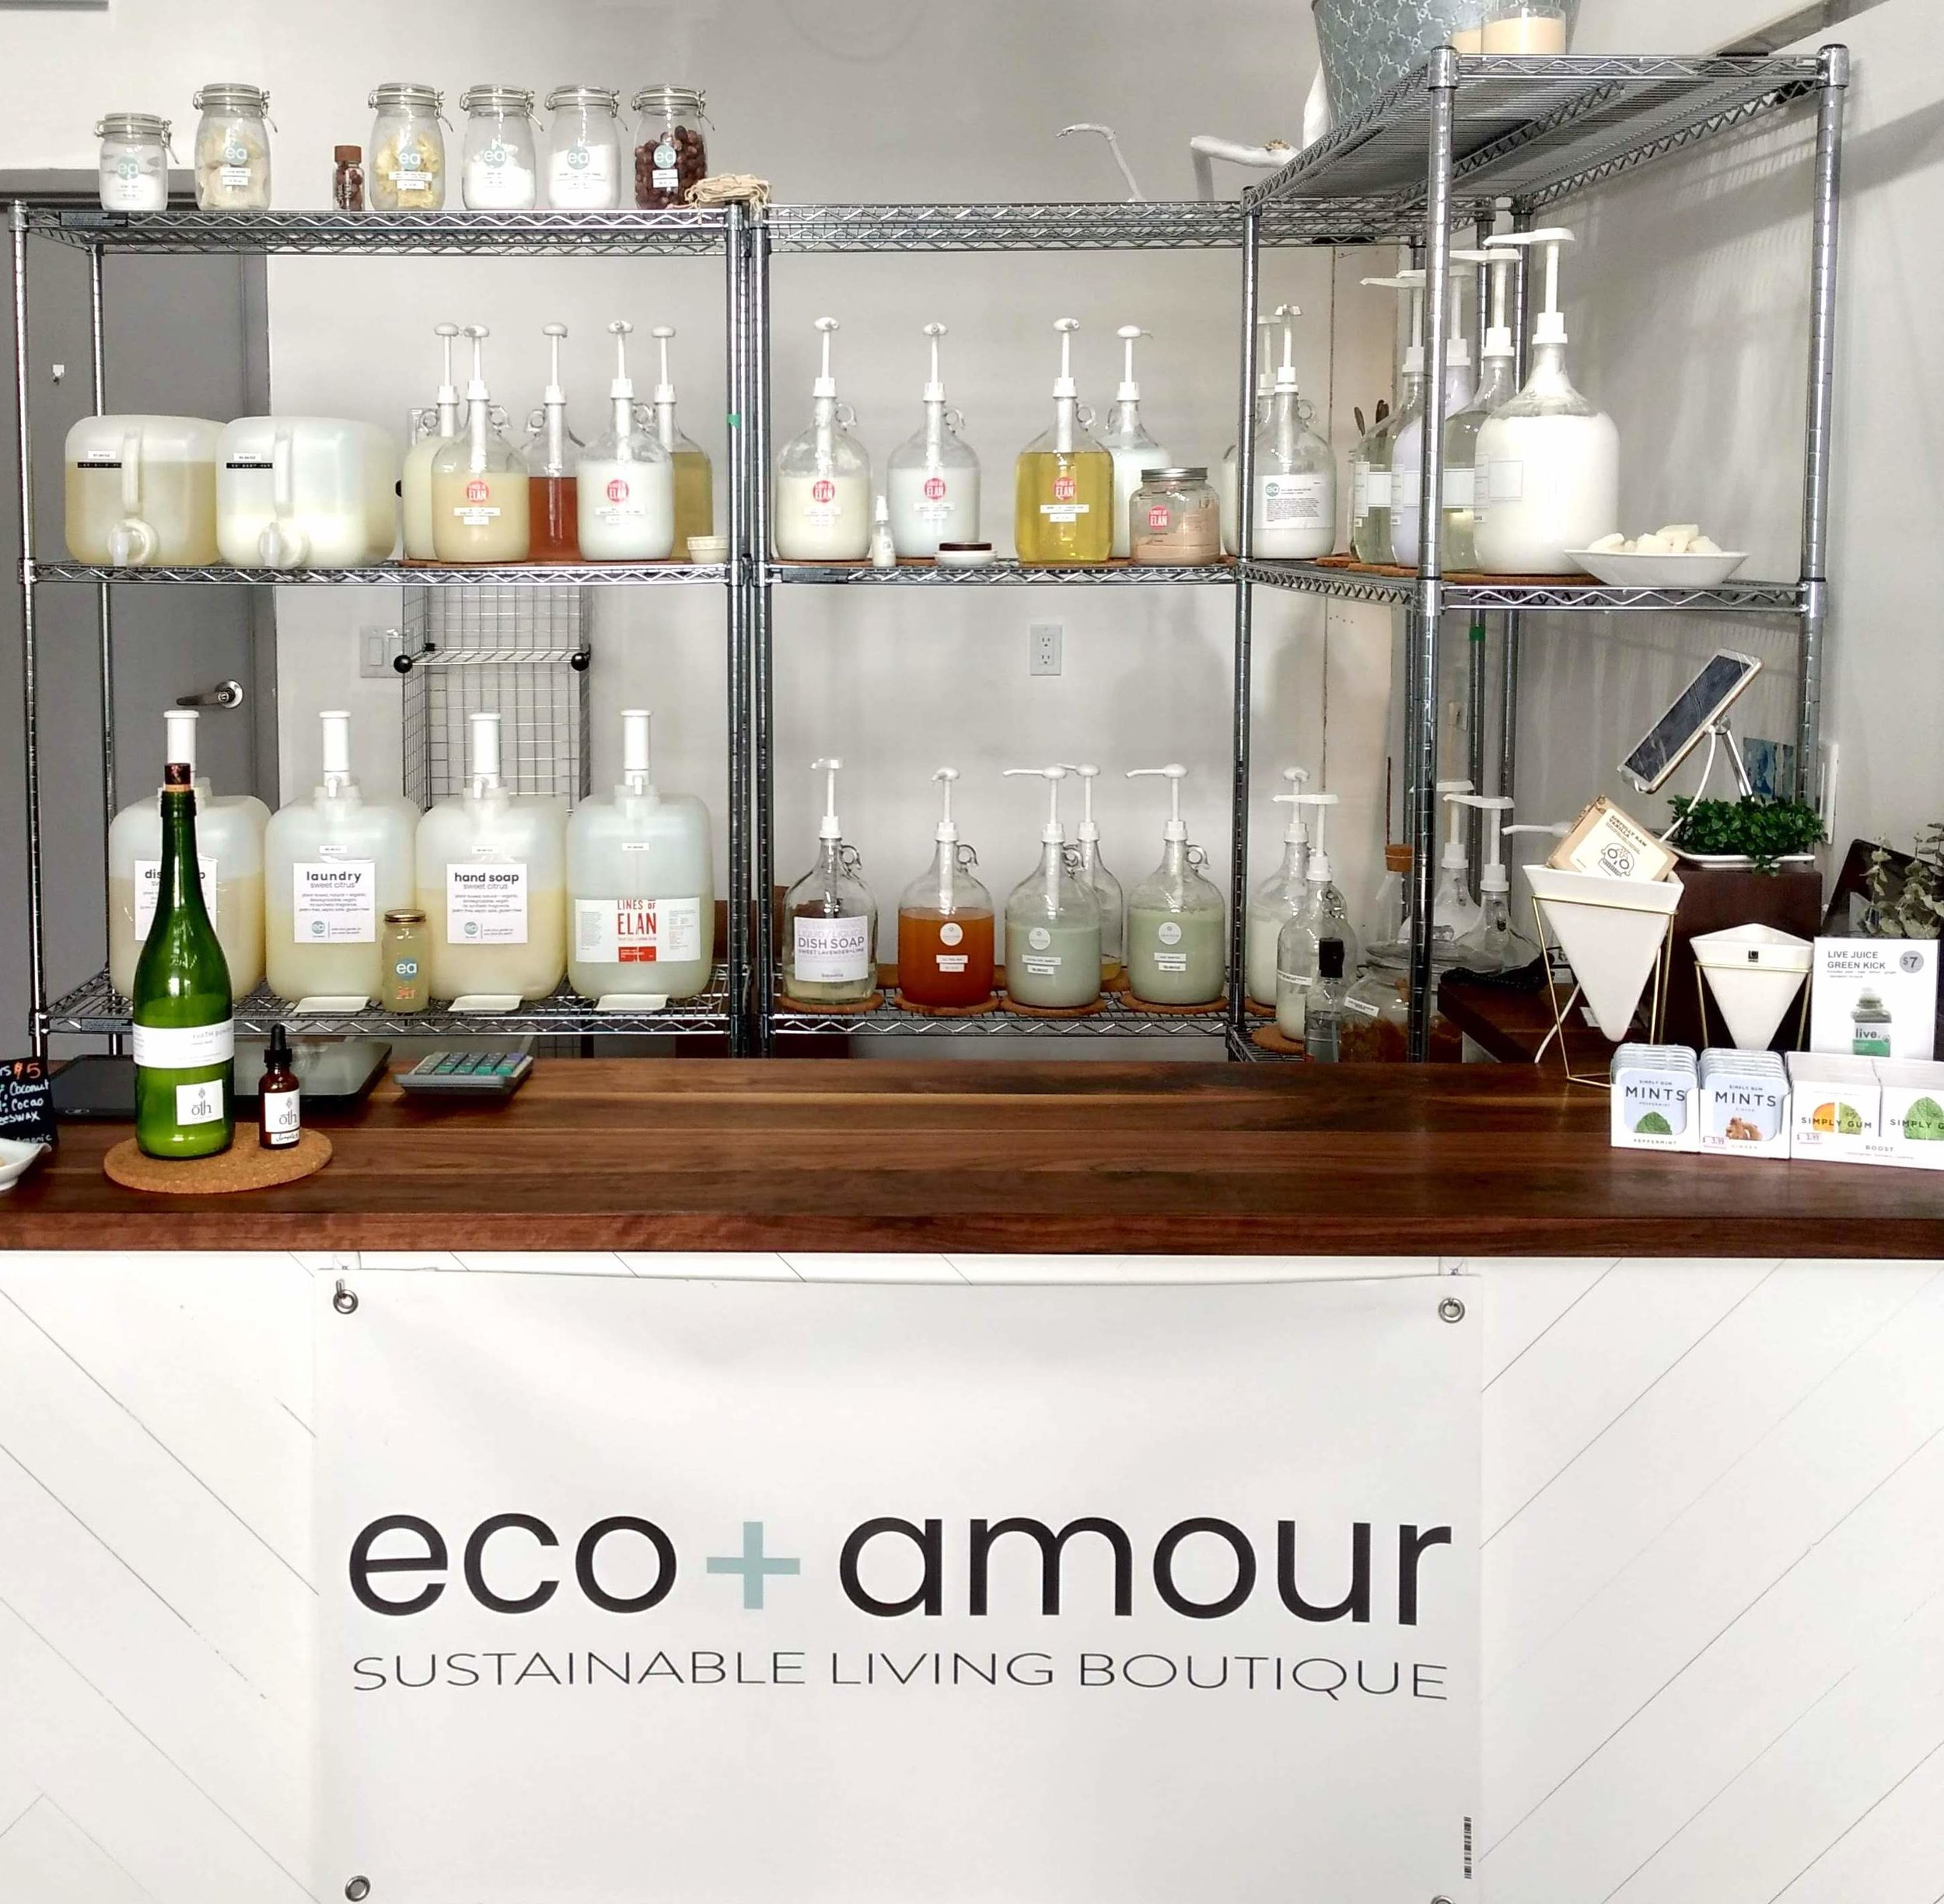 photo: eco+amour